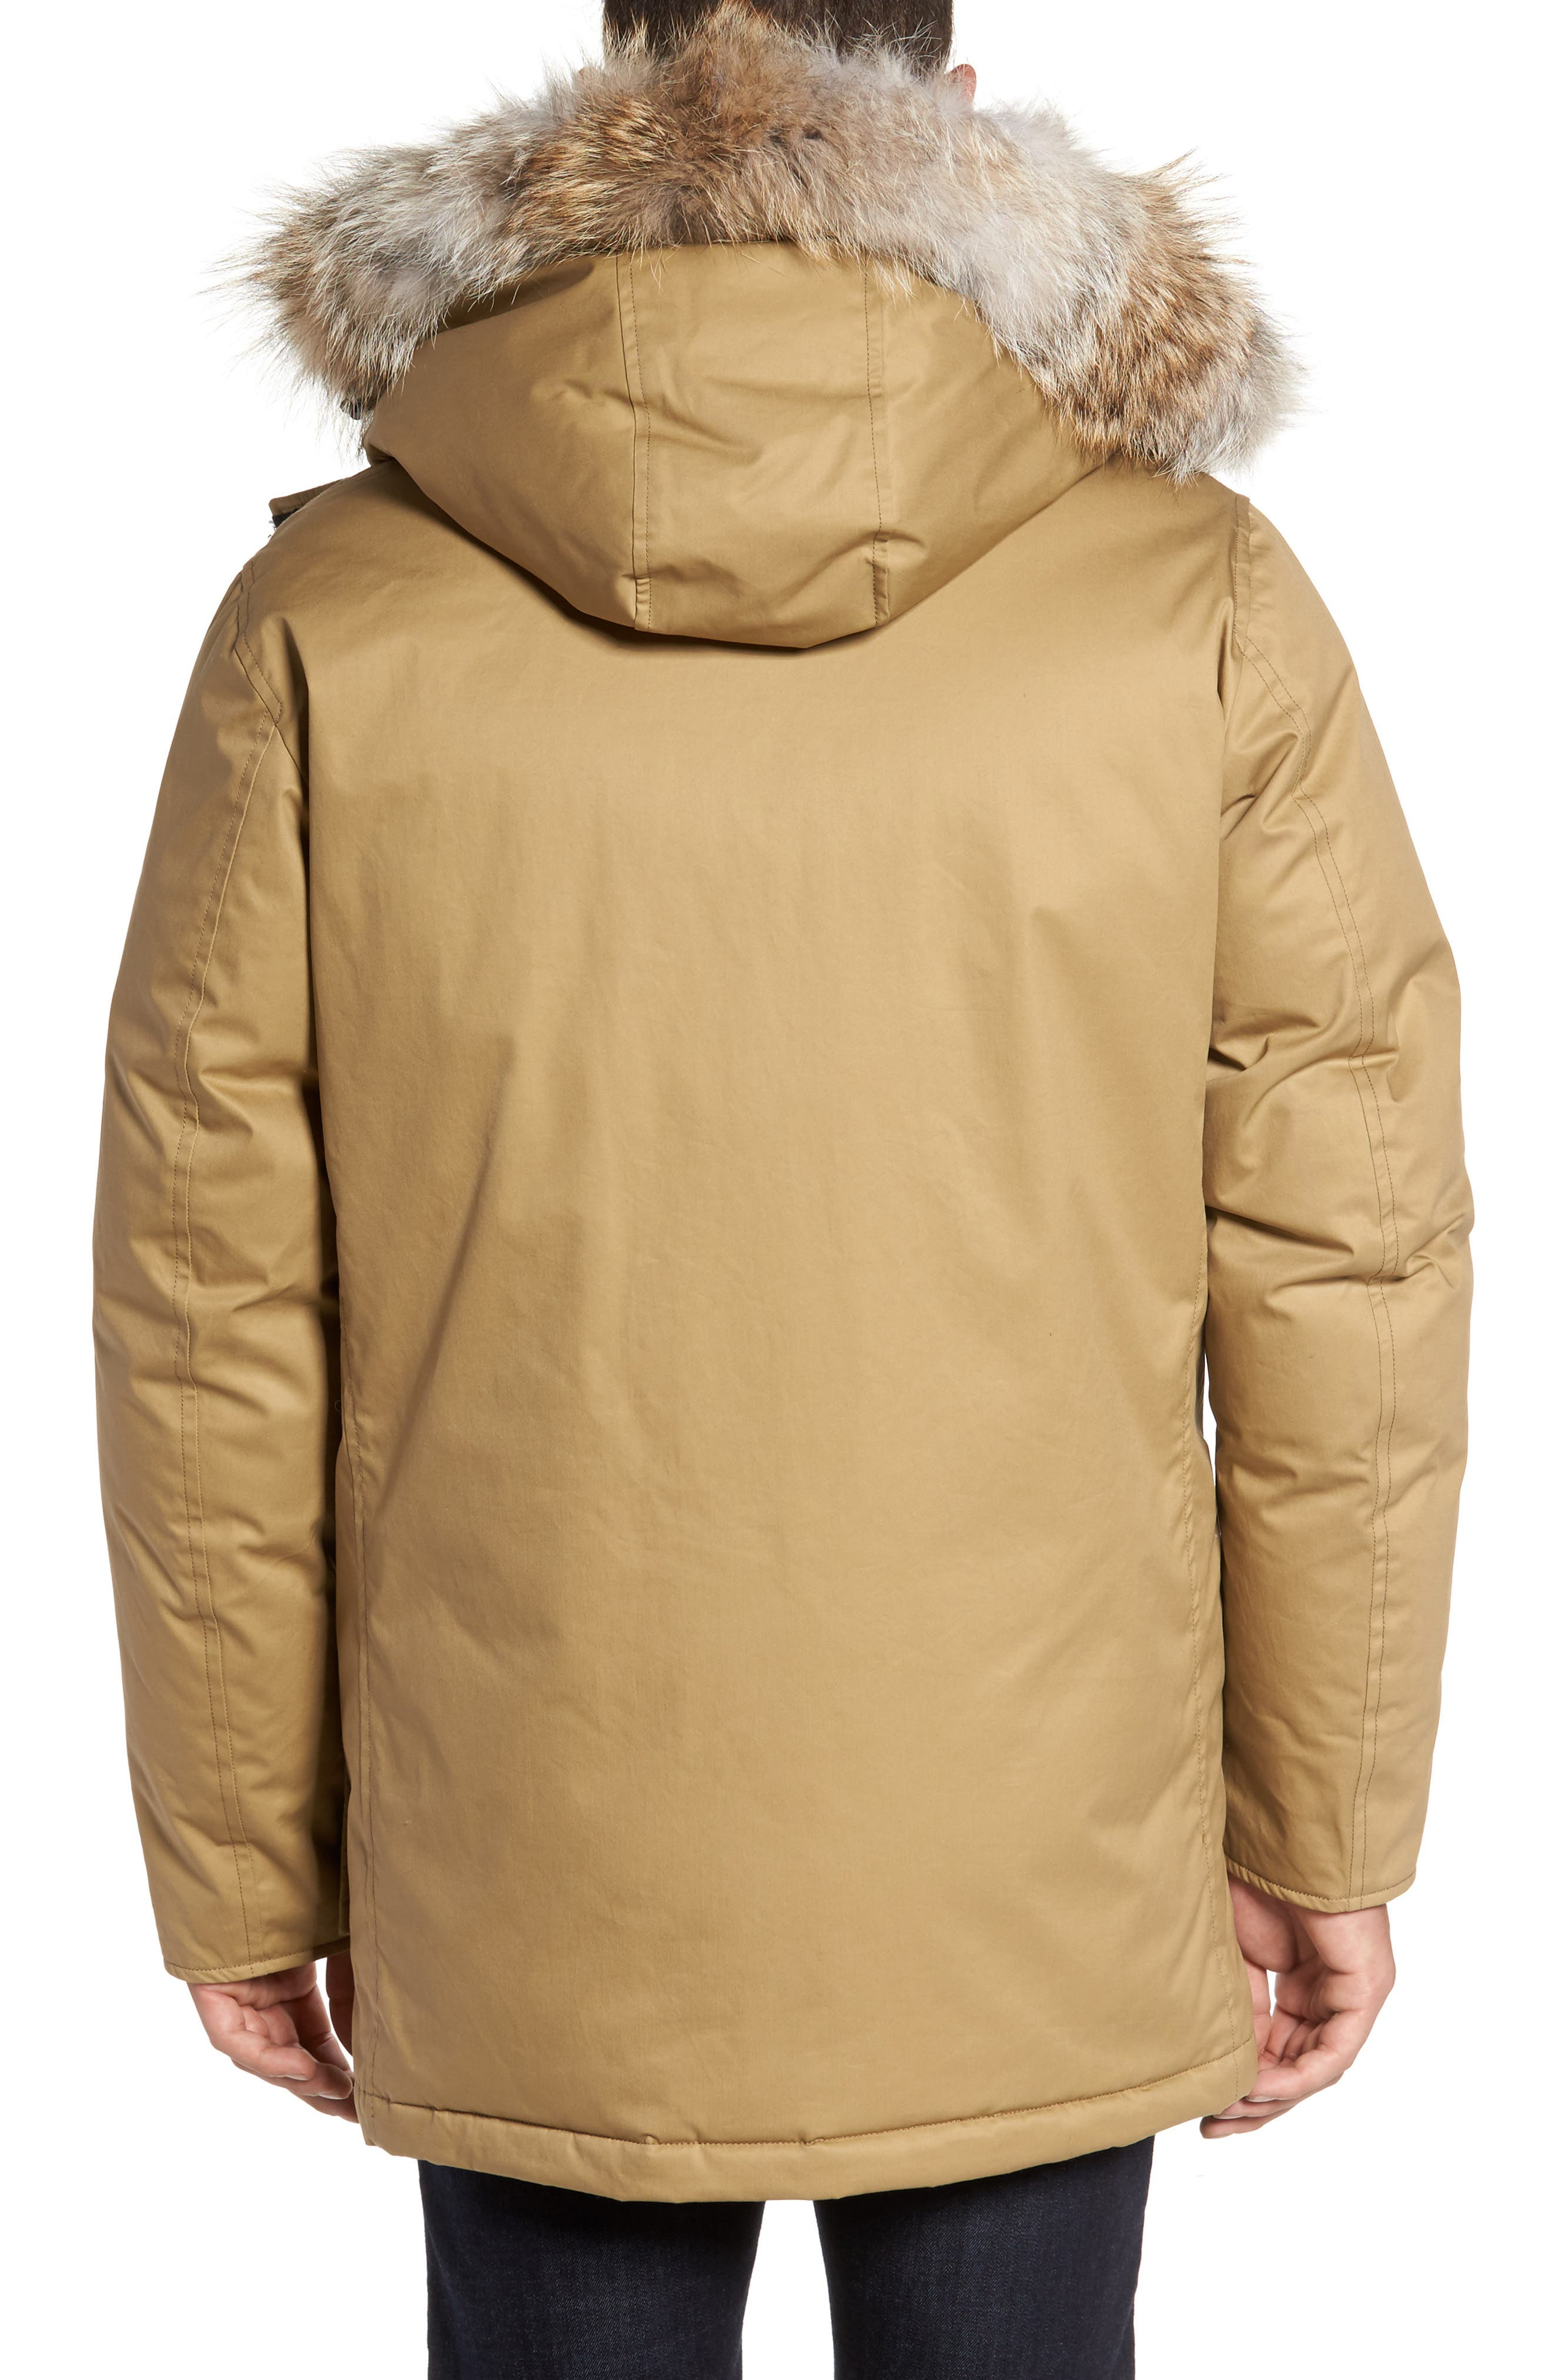 John Rich & Bros. Laminated Cotton Down Parka with Genuine Coyote Fur Trim,                             Alternate thumbnail 4, color,